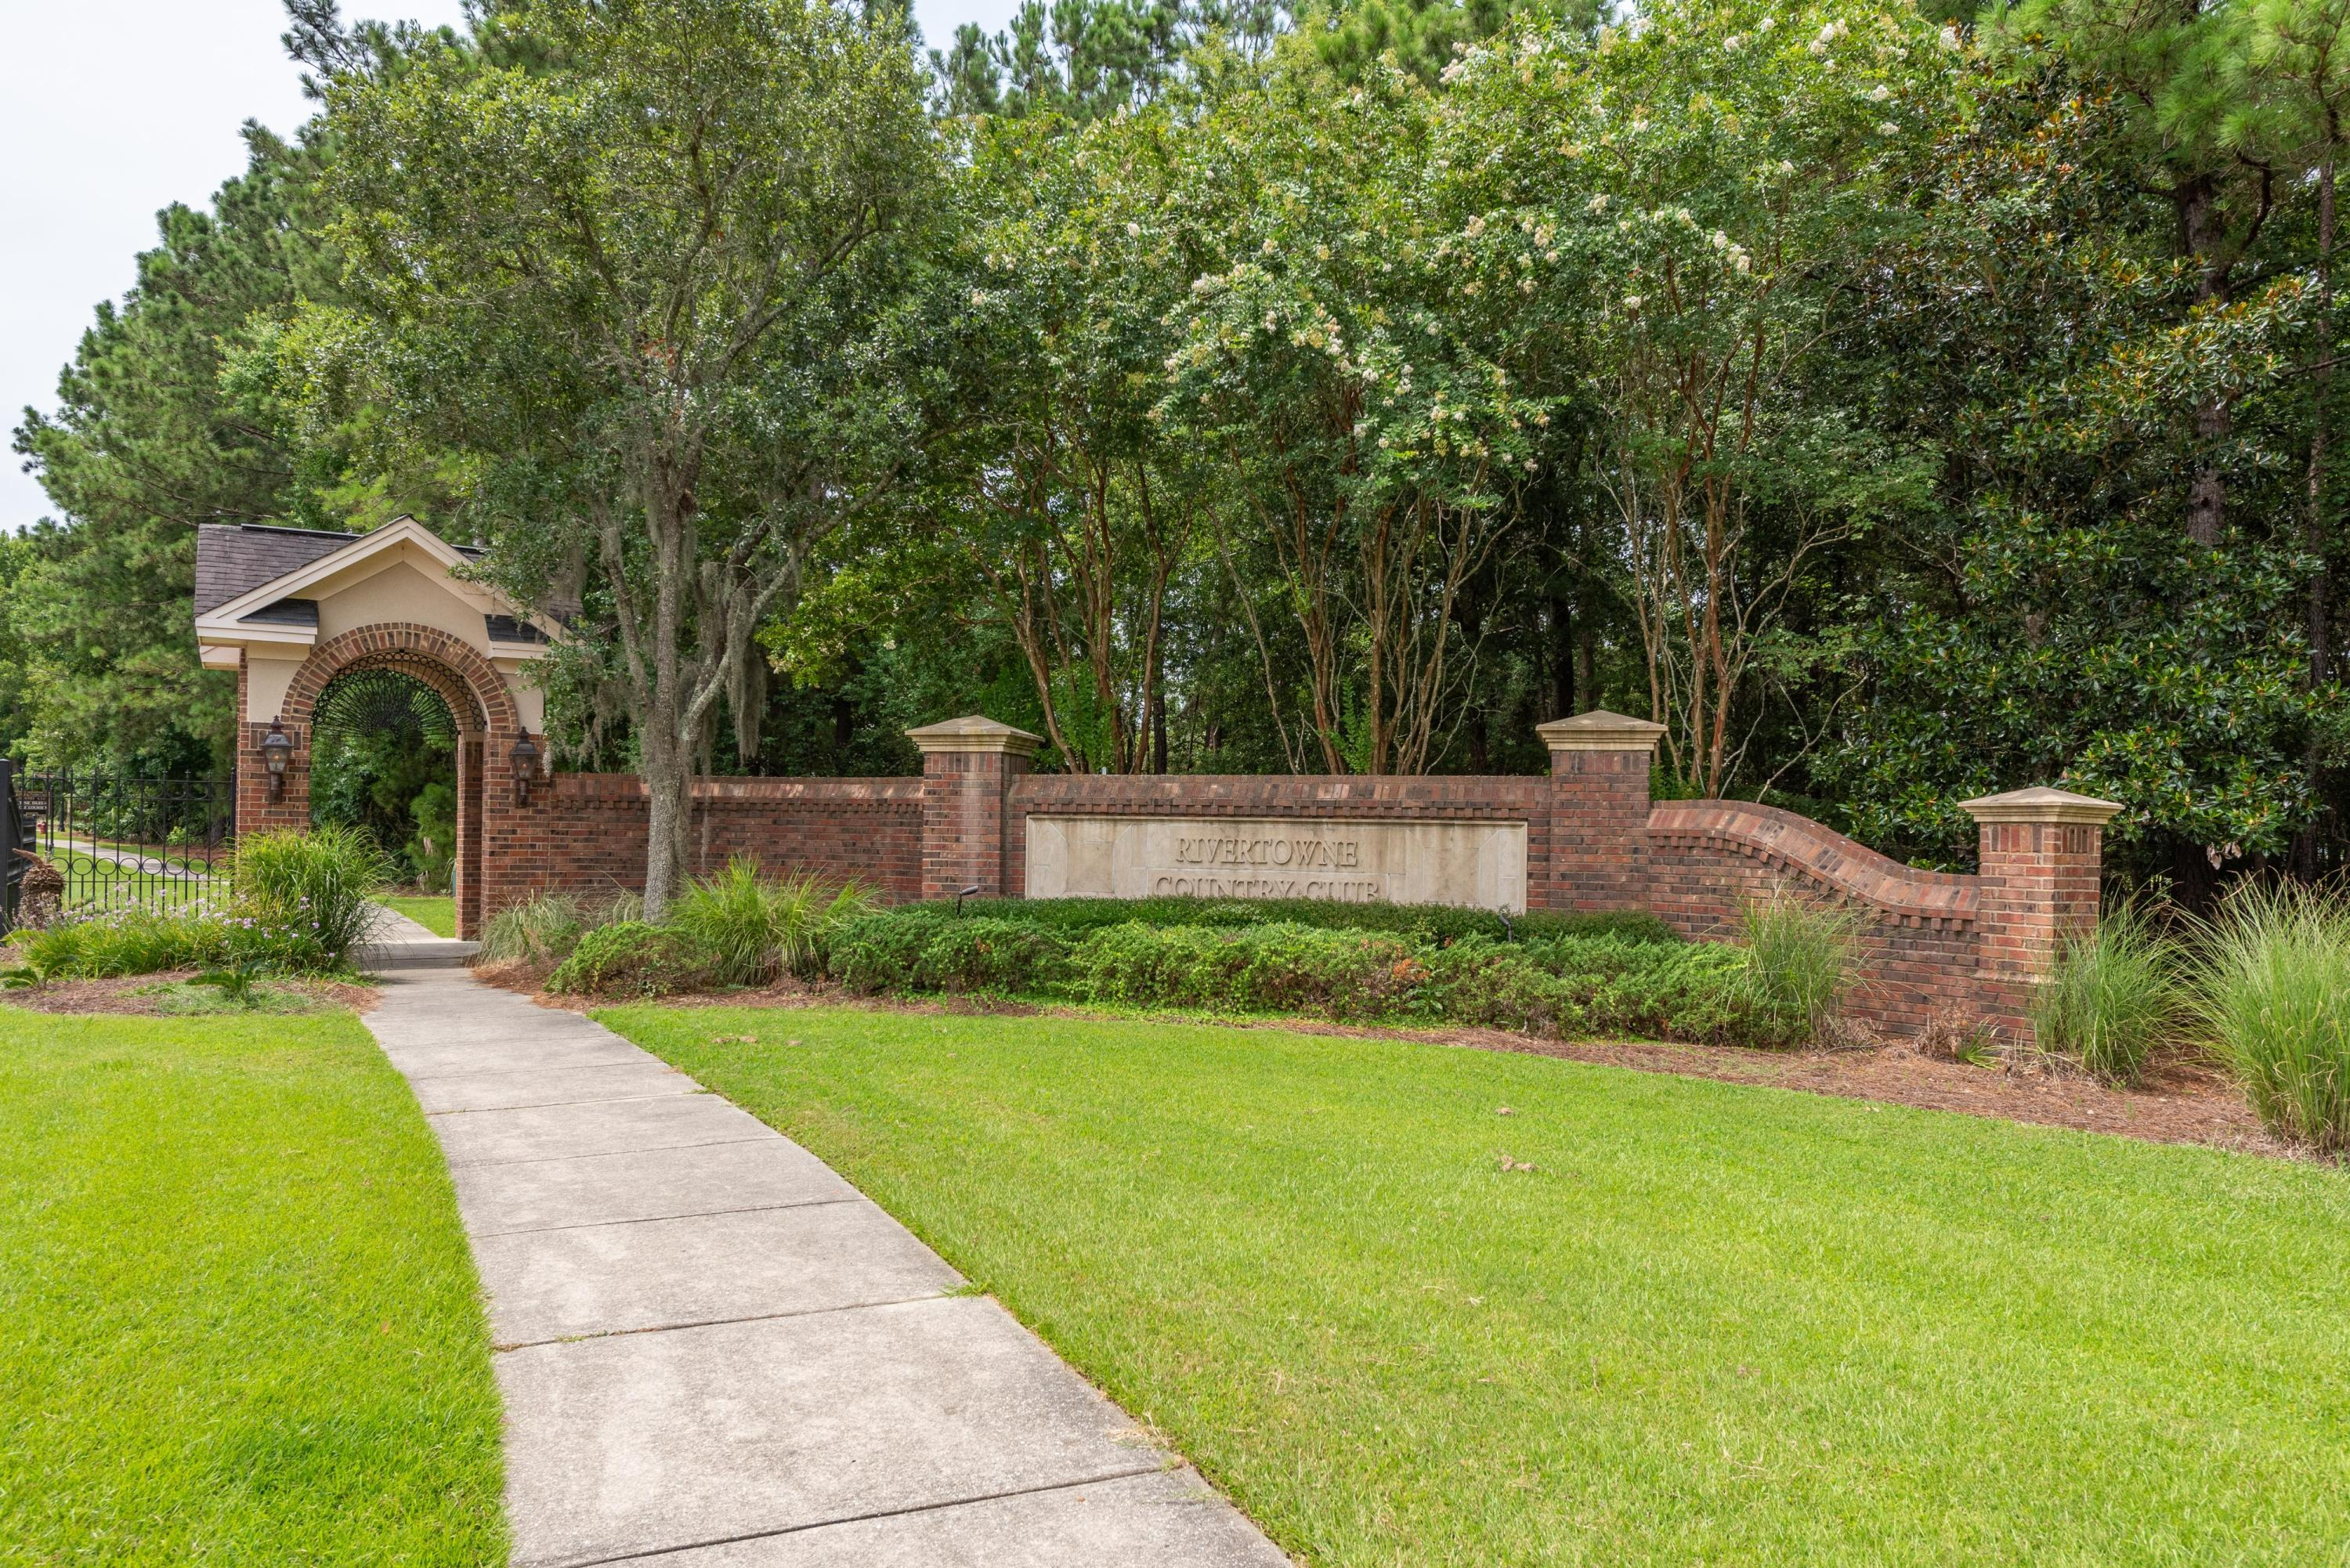 Rivertowne Homes For Sale - 2844 Rivertowne, Mount Pleasant, SC - 17